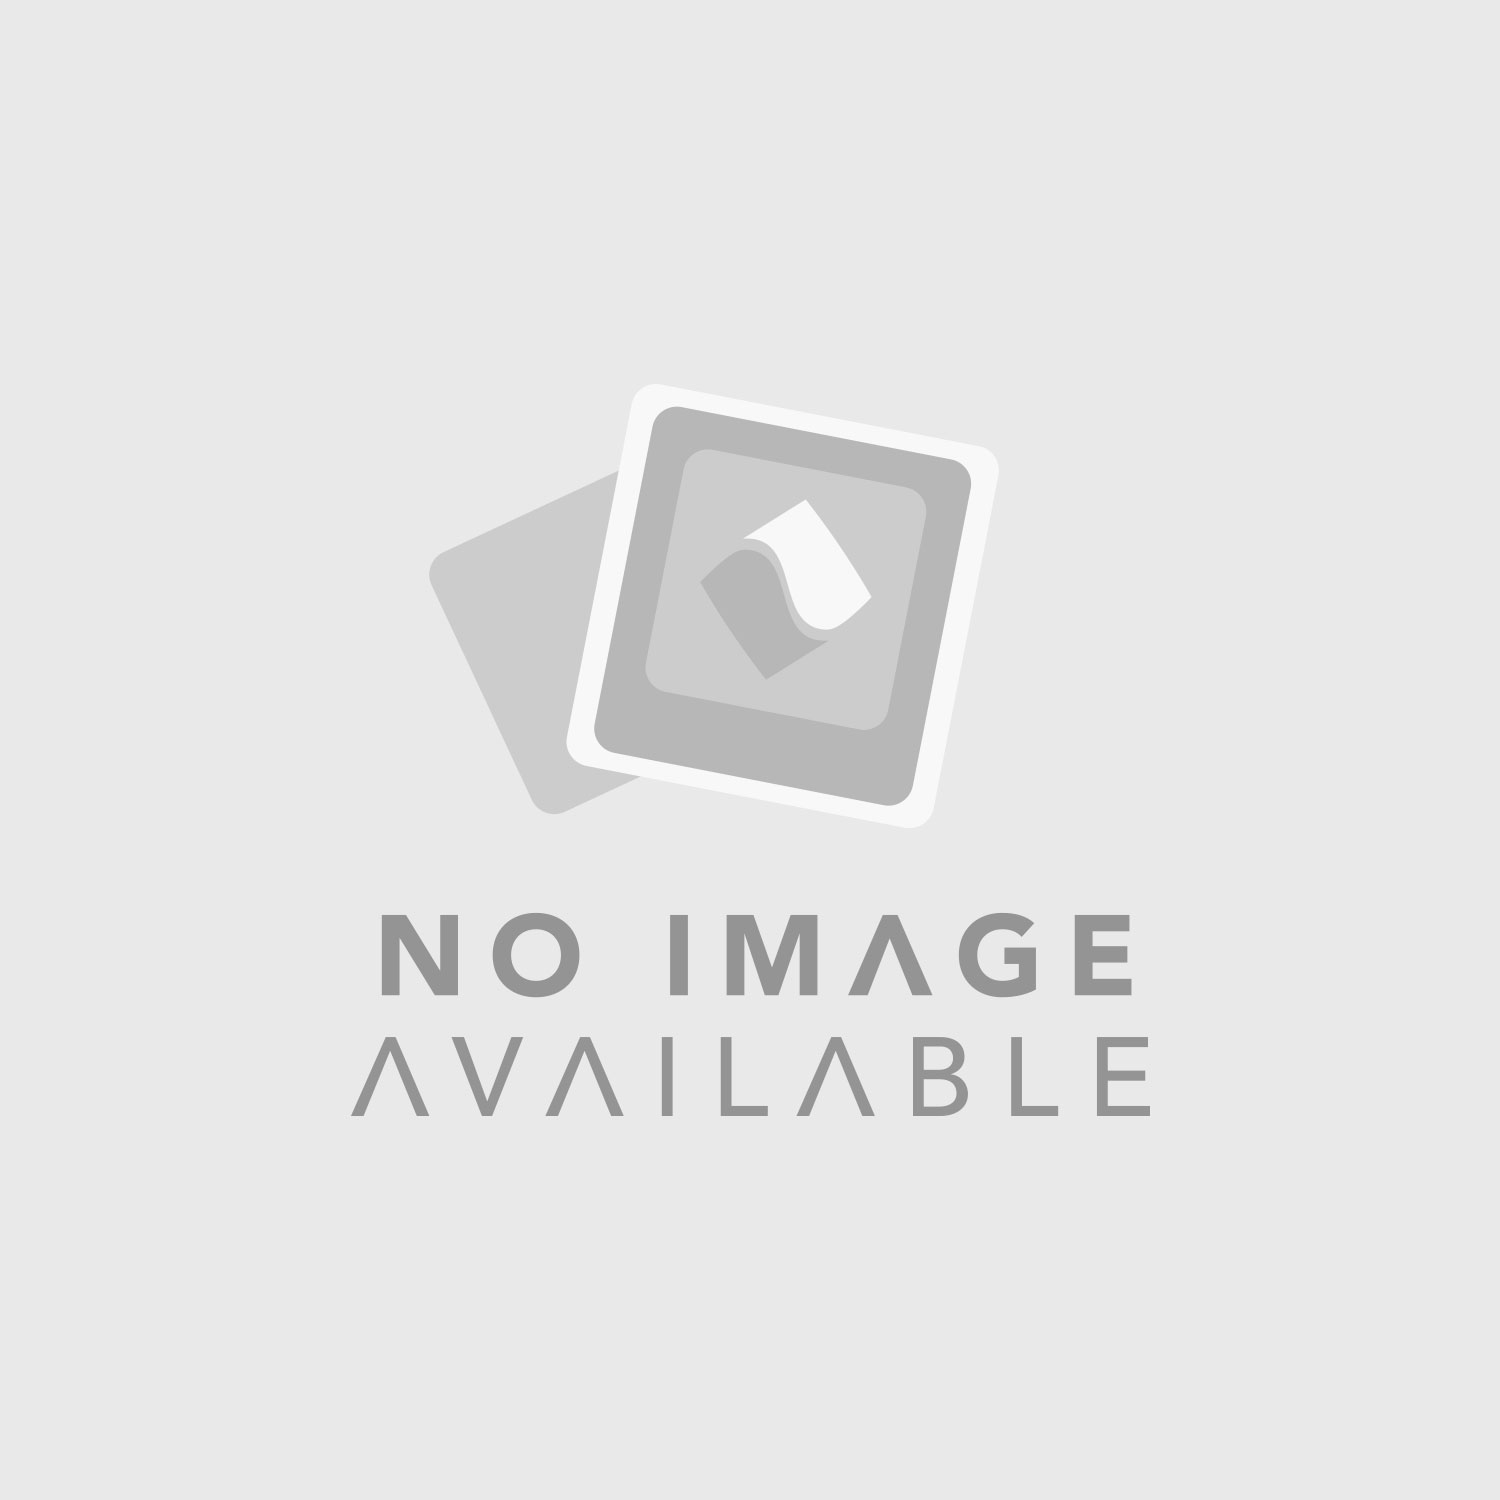 Rode RodeCaster Pro Ultimate 2 Guest Podcasting Bundle with PodMics (O.C. White Boom Arms)